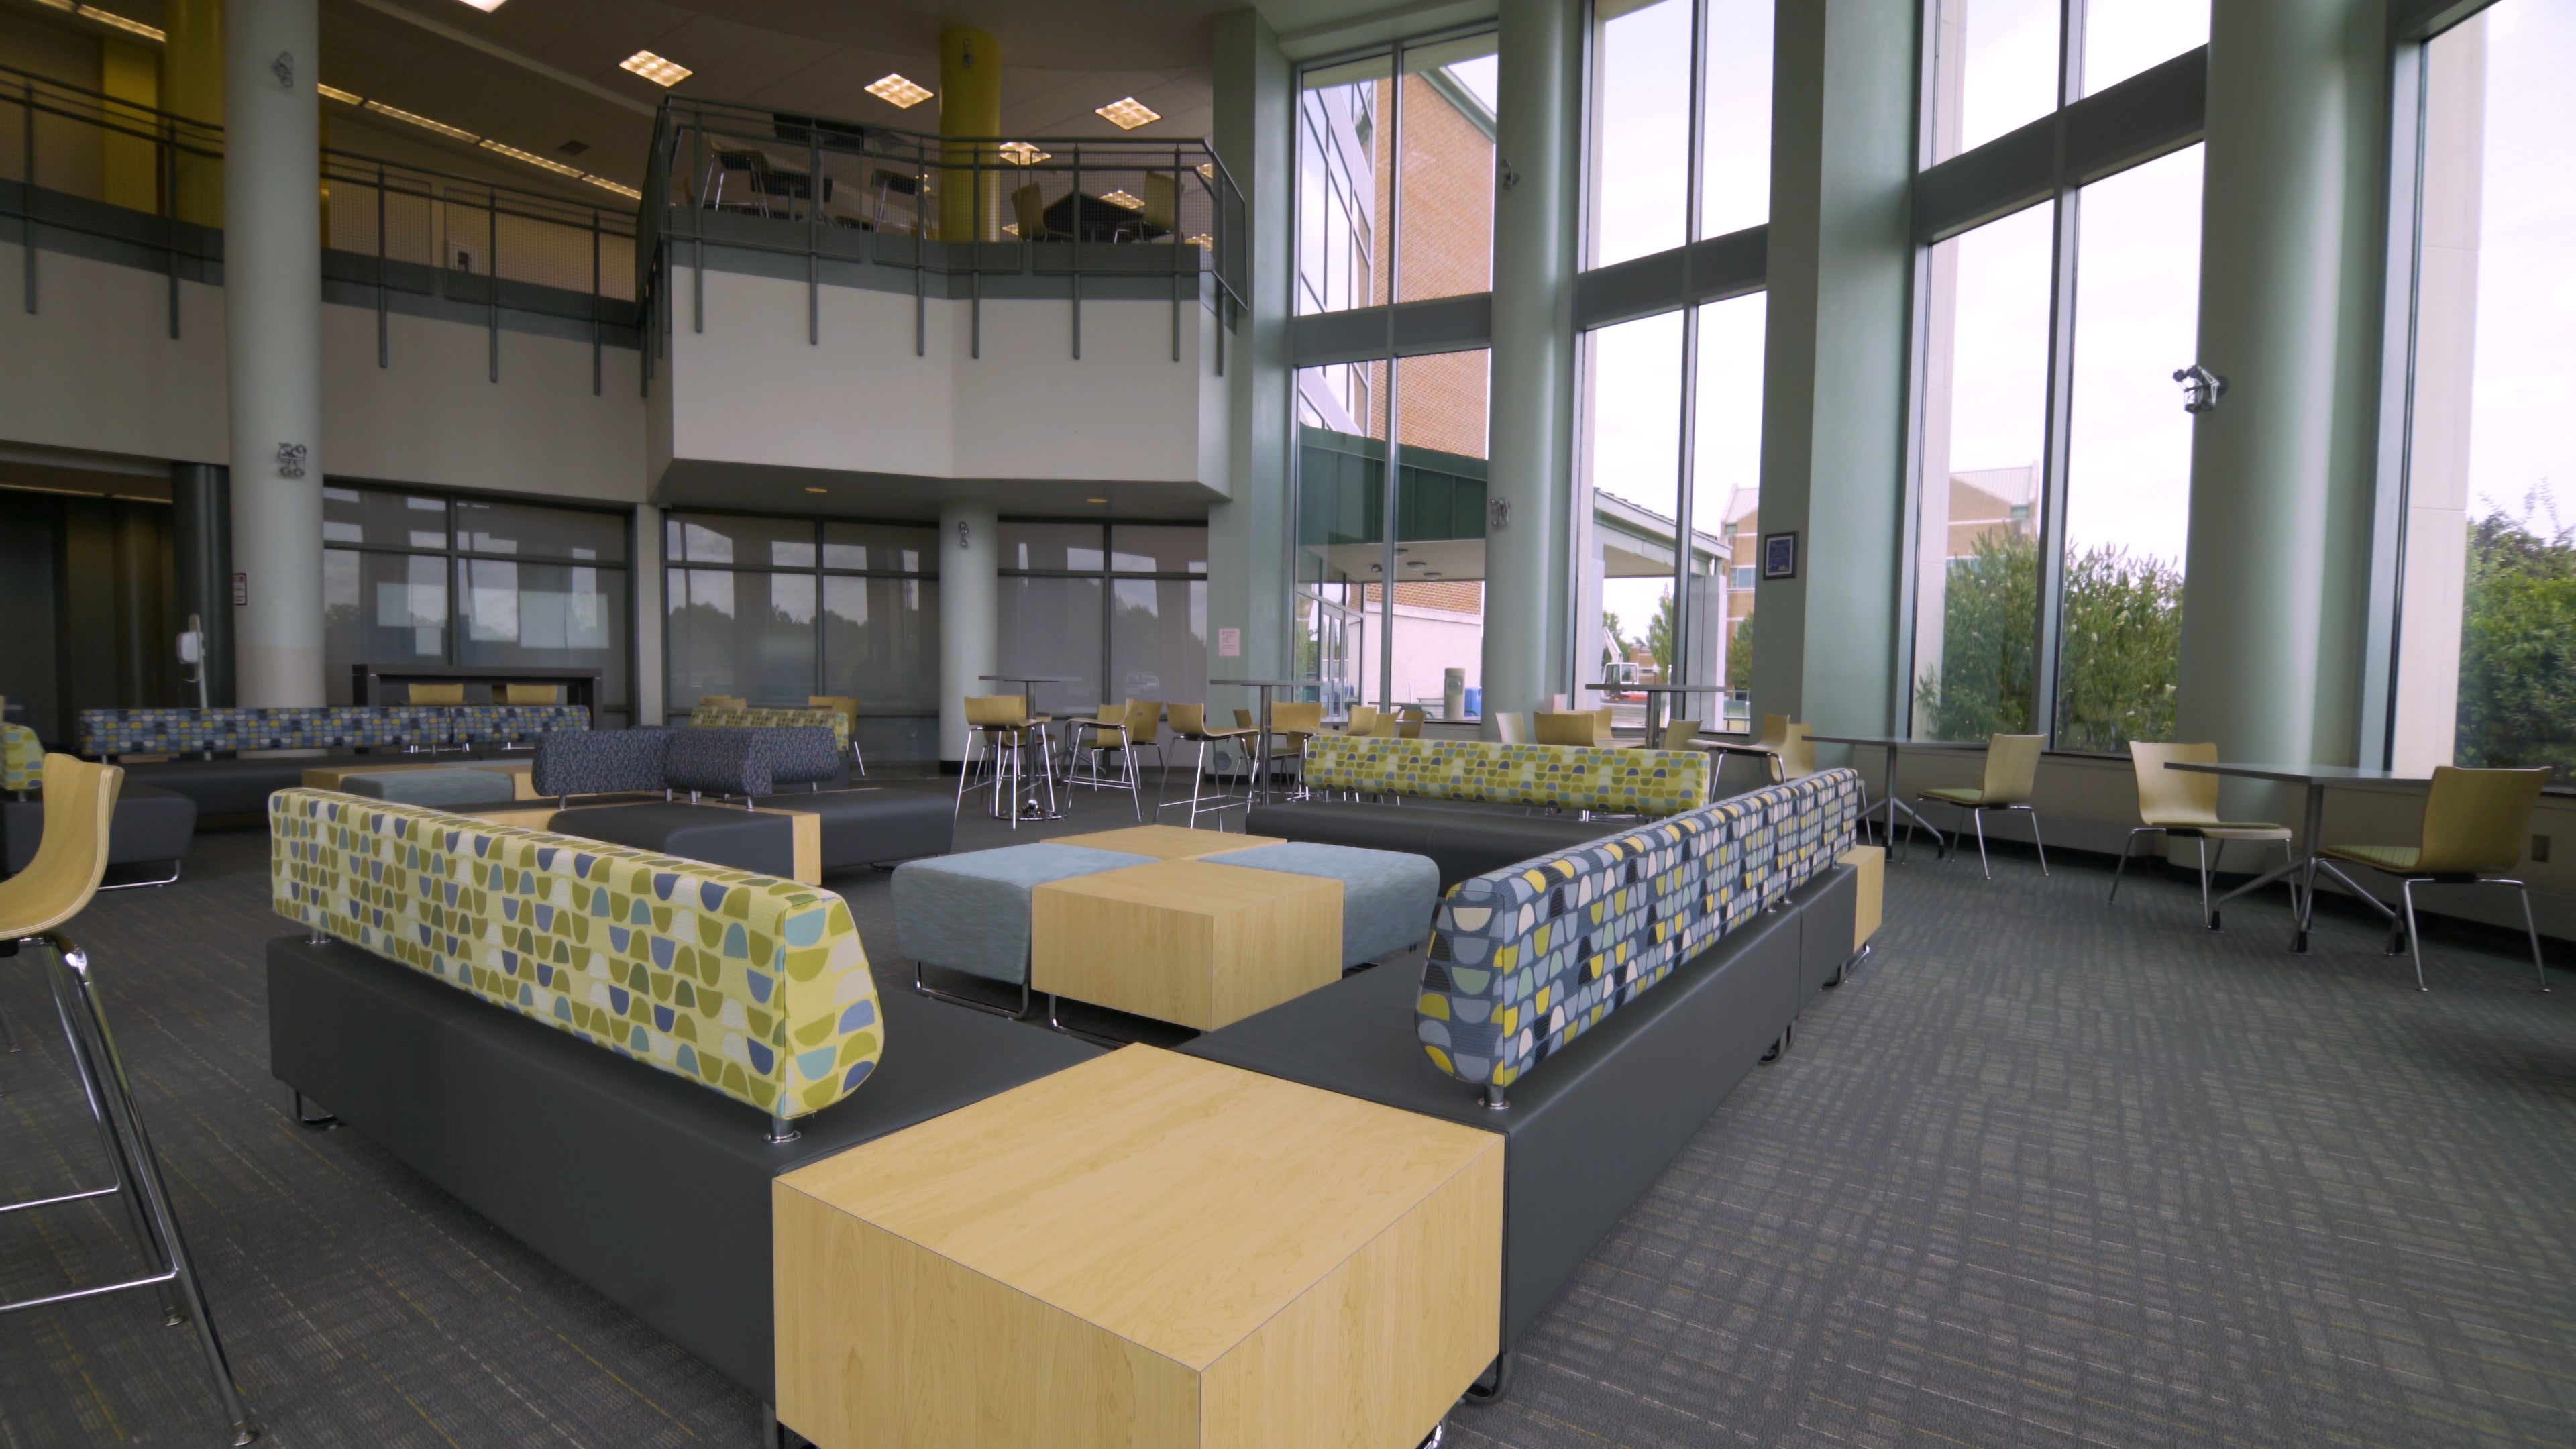 Beautiful Lounge Space At A Local NJ College Featuring KI Furniture Sway Hub And